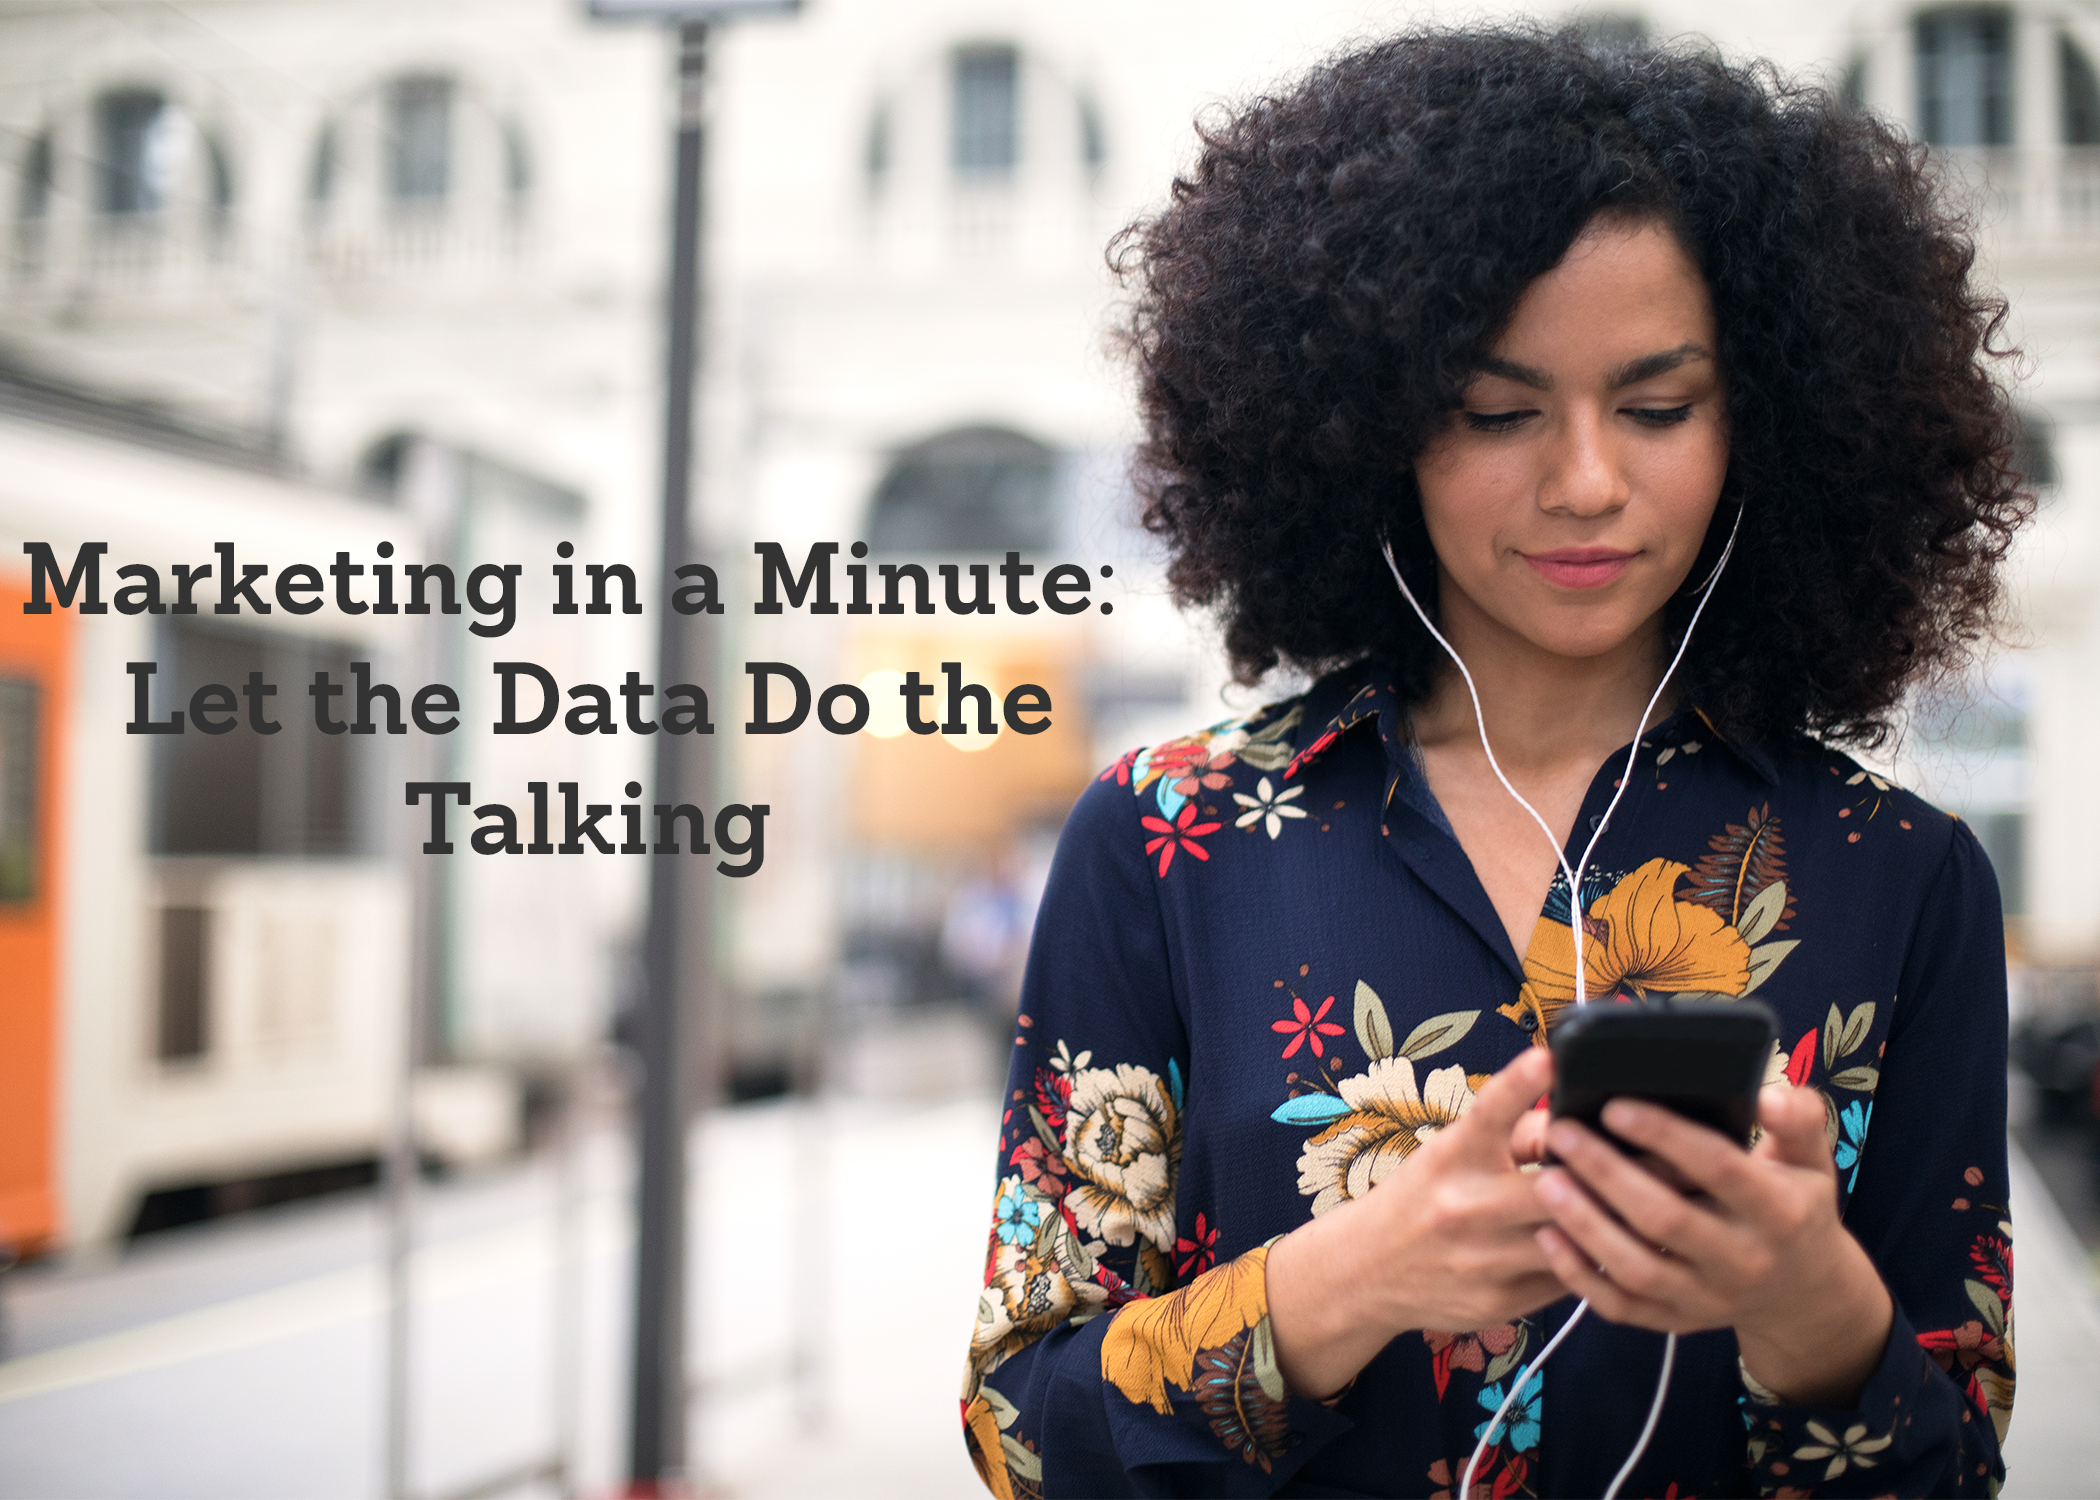 Marketing in a Minute: Let the Data Do the Talking